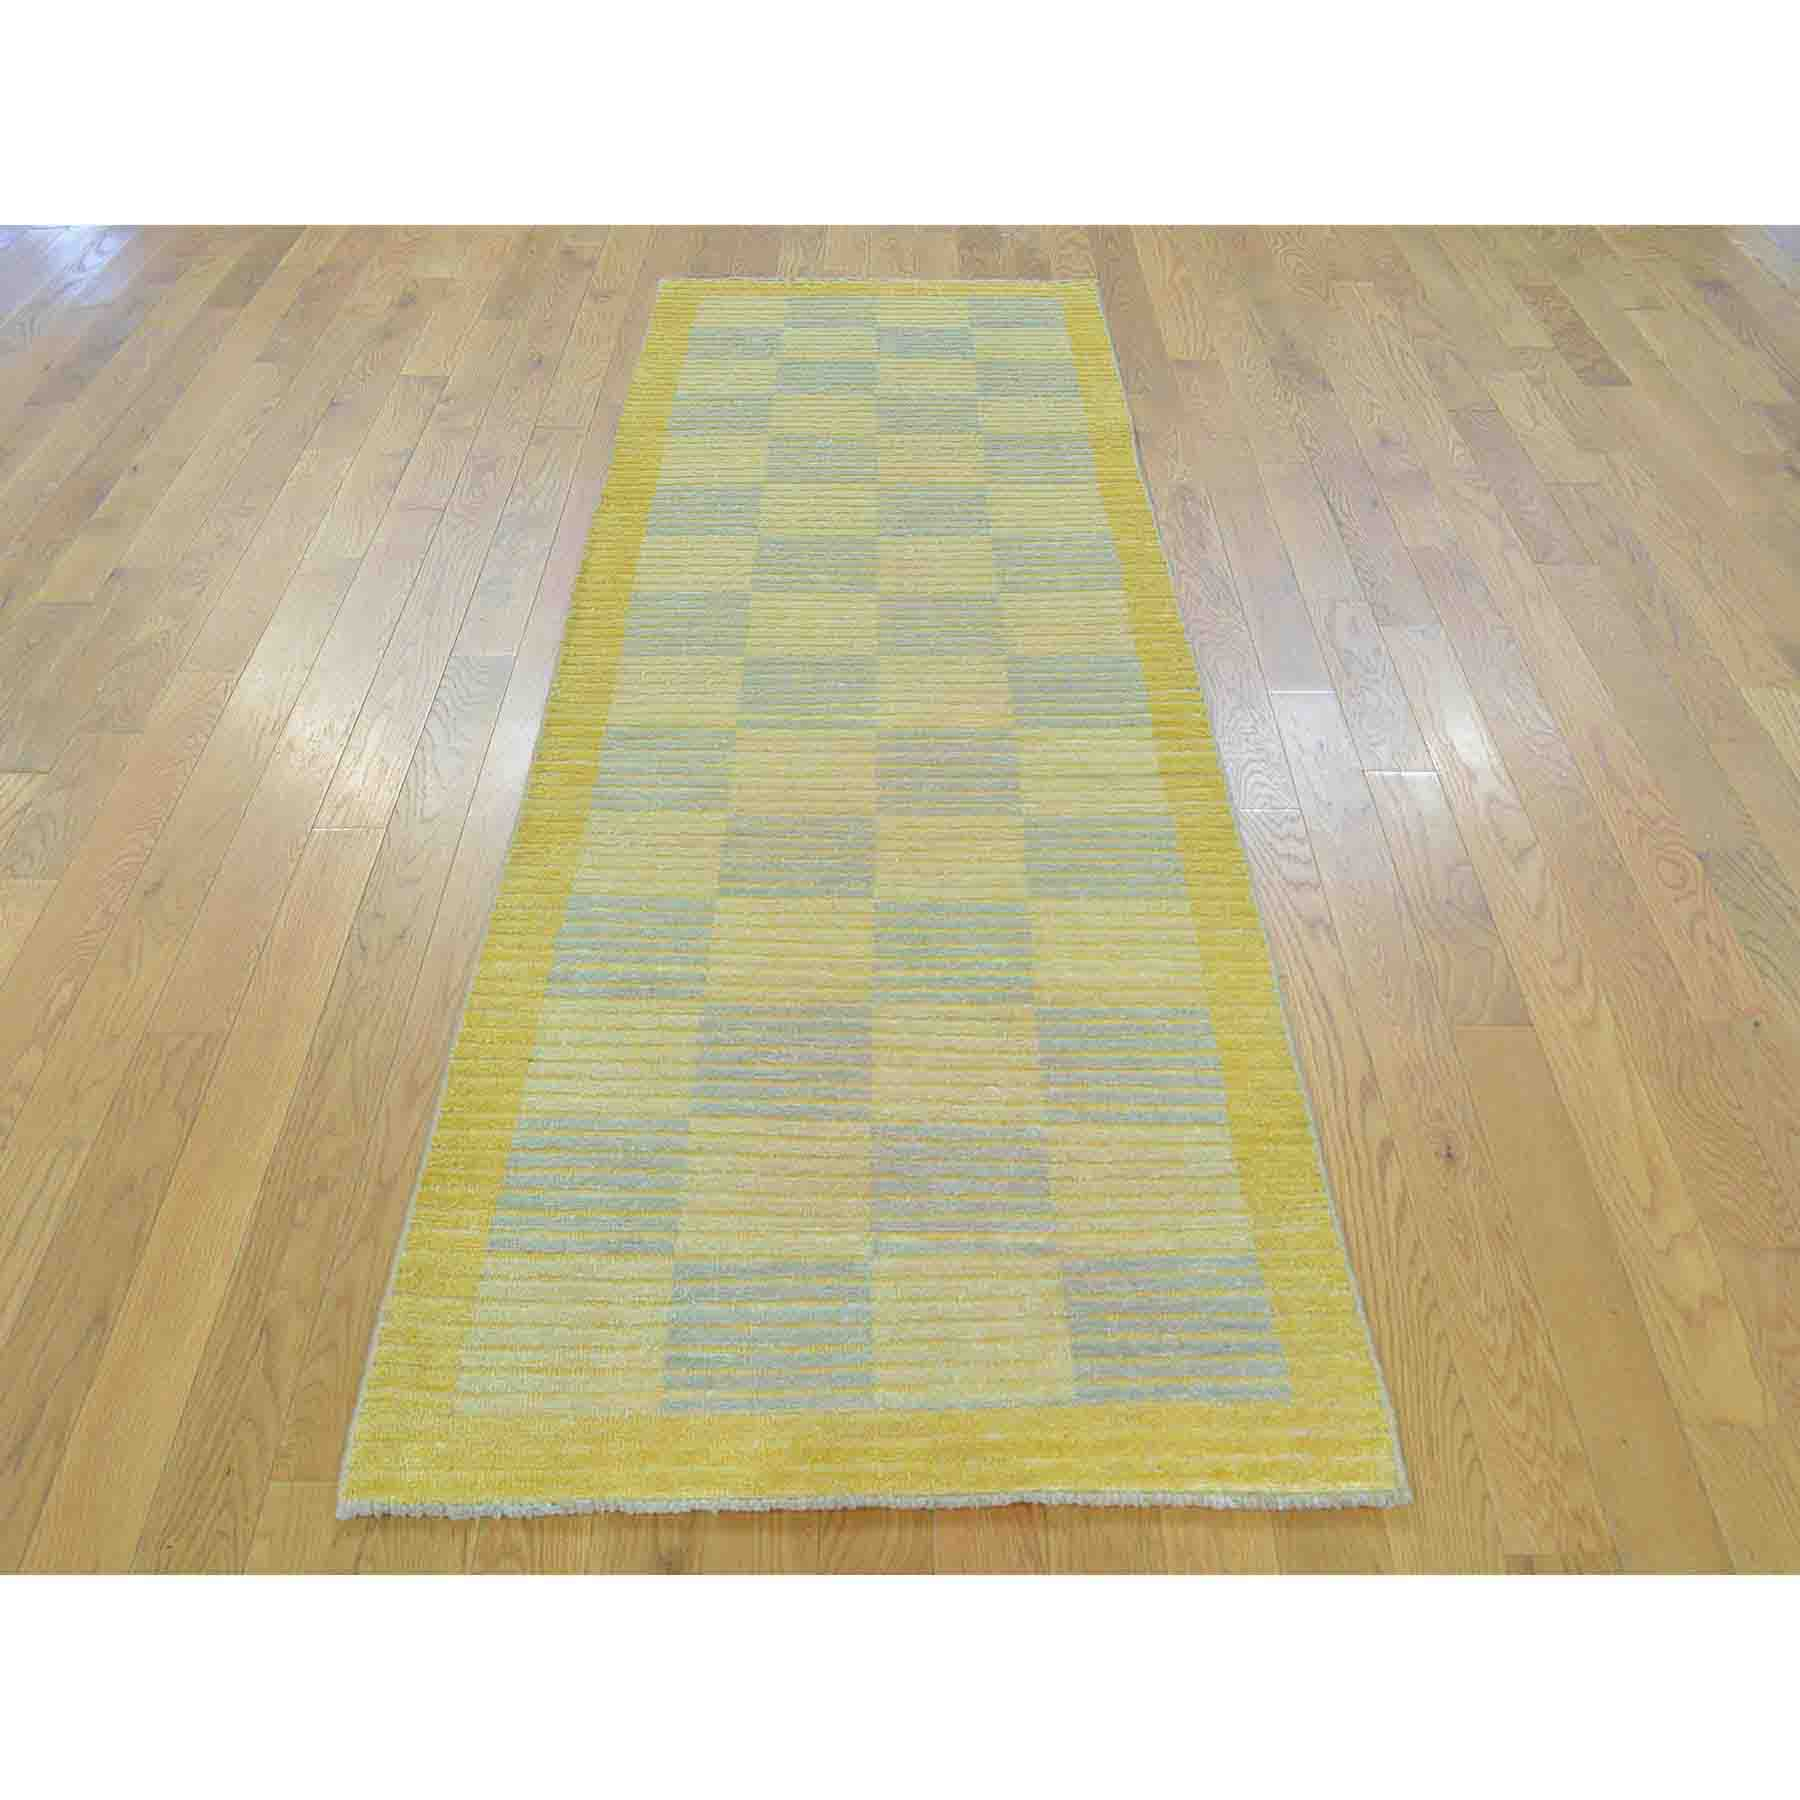 Modern-Contemporary-Hand-Knotted-Rug-134465